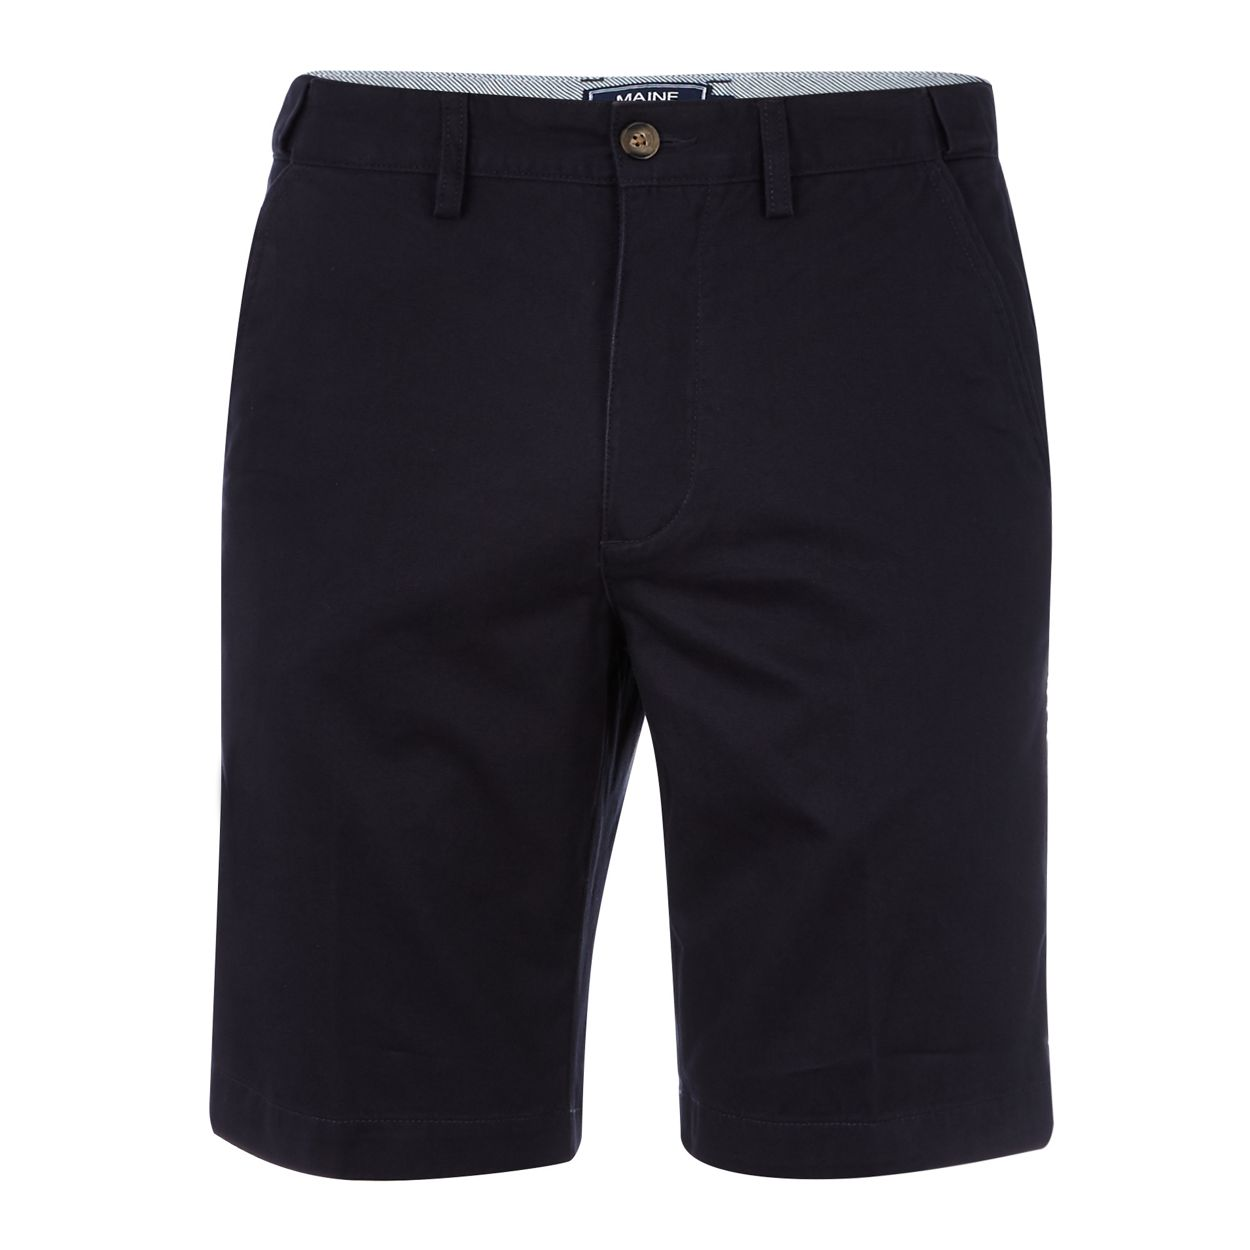 Maine New England Big and tall dark navy chino shorts